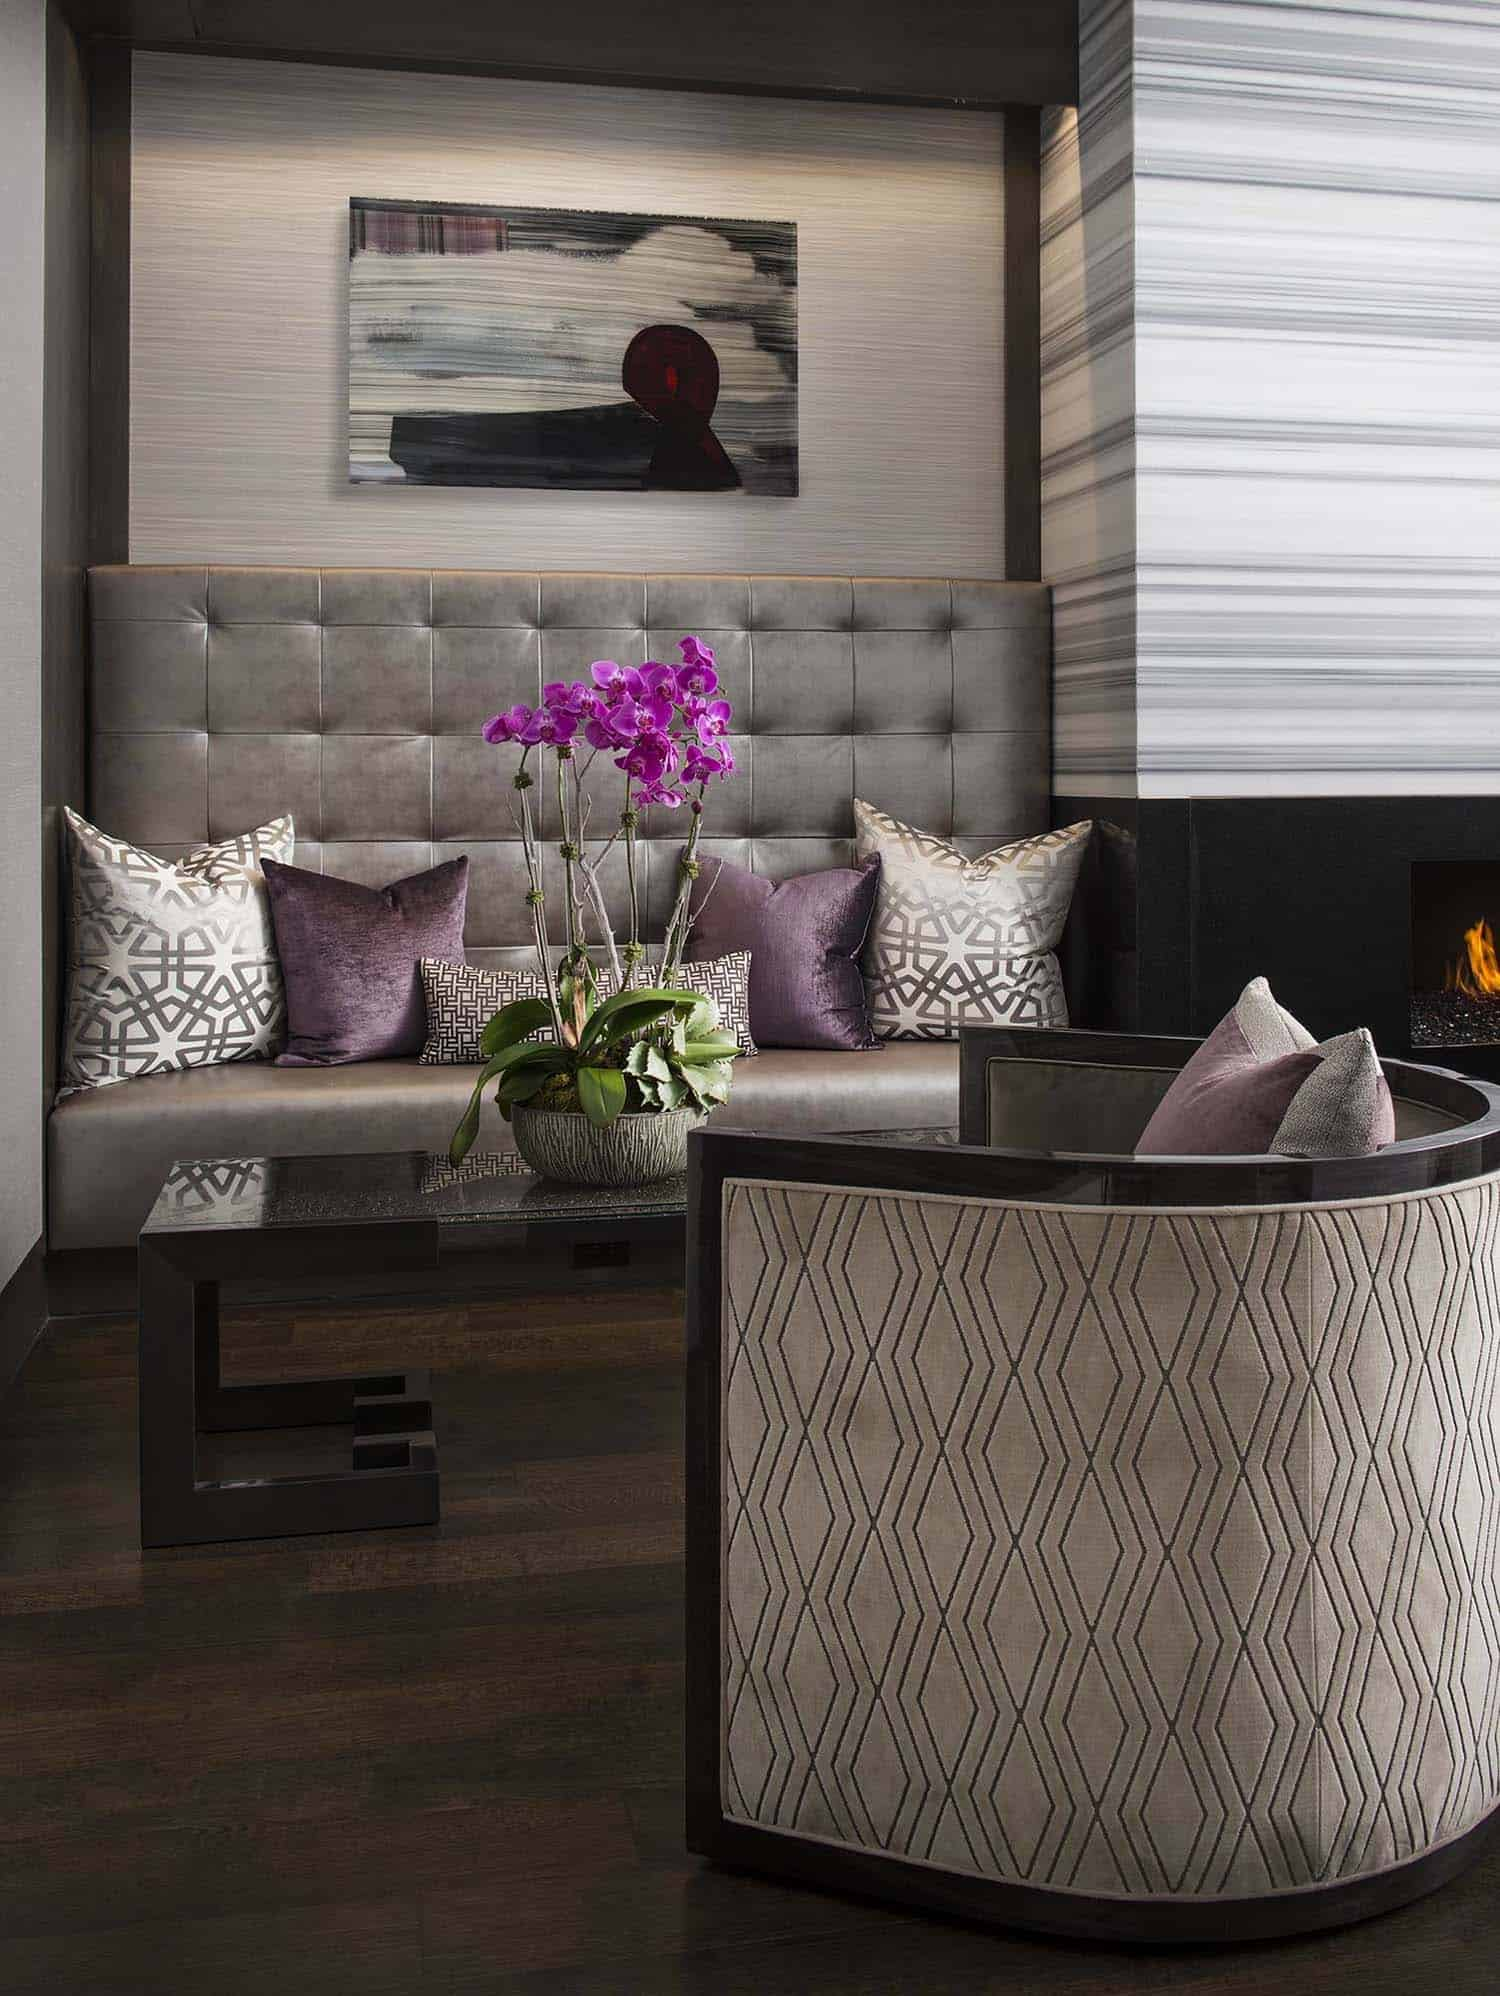 Contemporary Style Home-Dallas Design Group-16-1 Kindesign